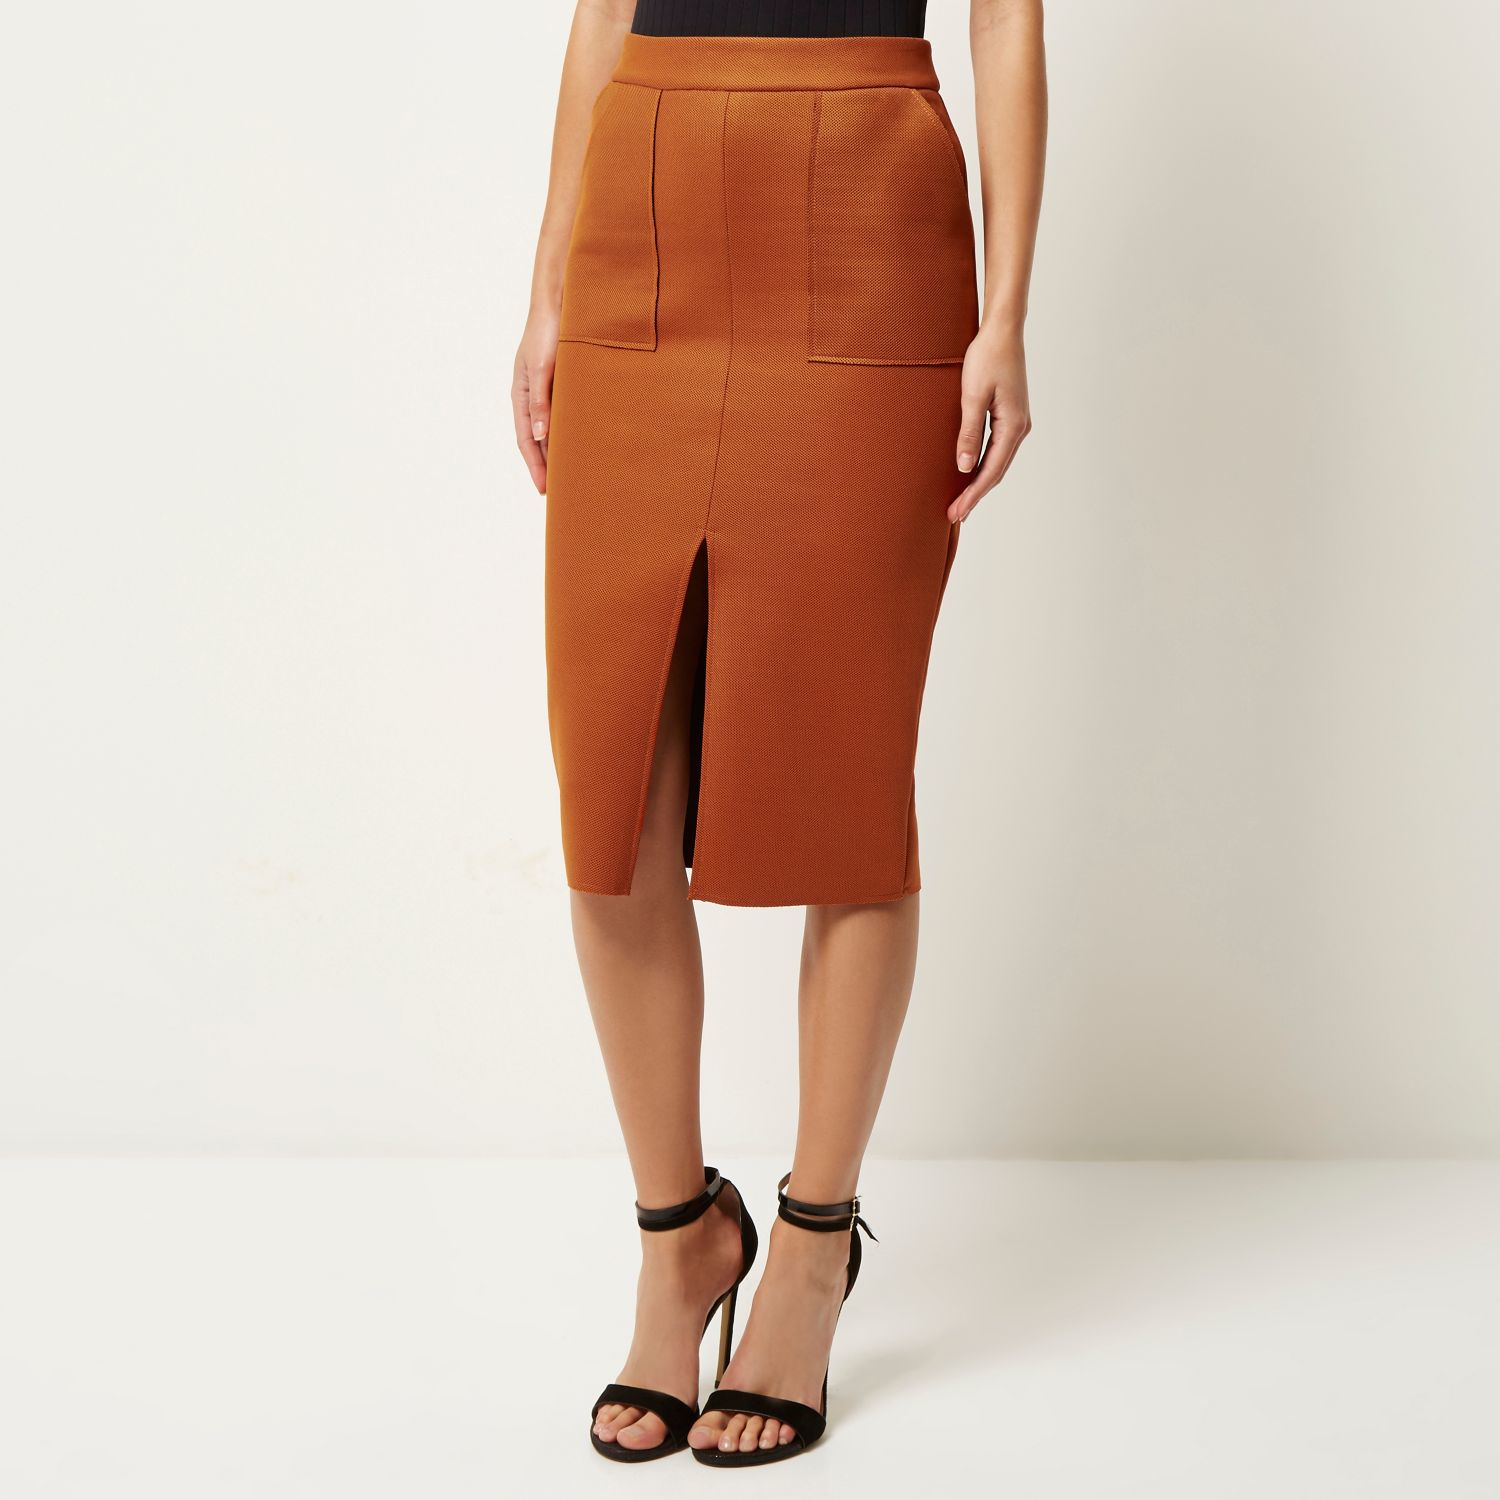 Womens Beige button front belted pencil skirt River Island Buy Cheap Professional Footaction Cheap Online a1iyefC